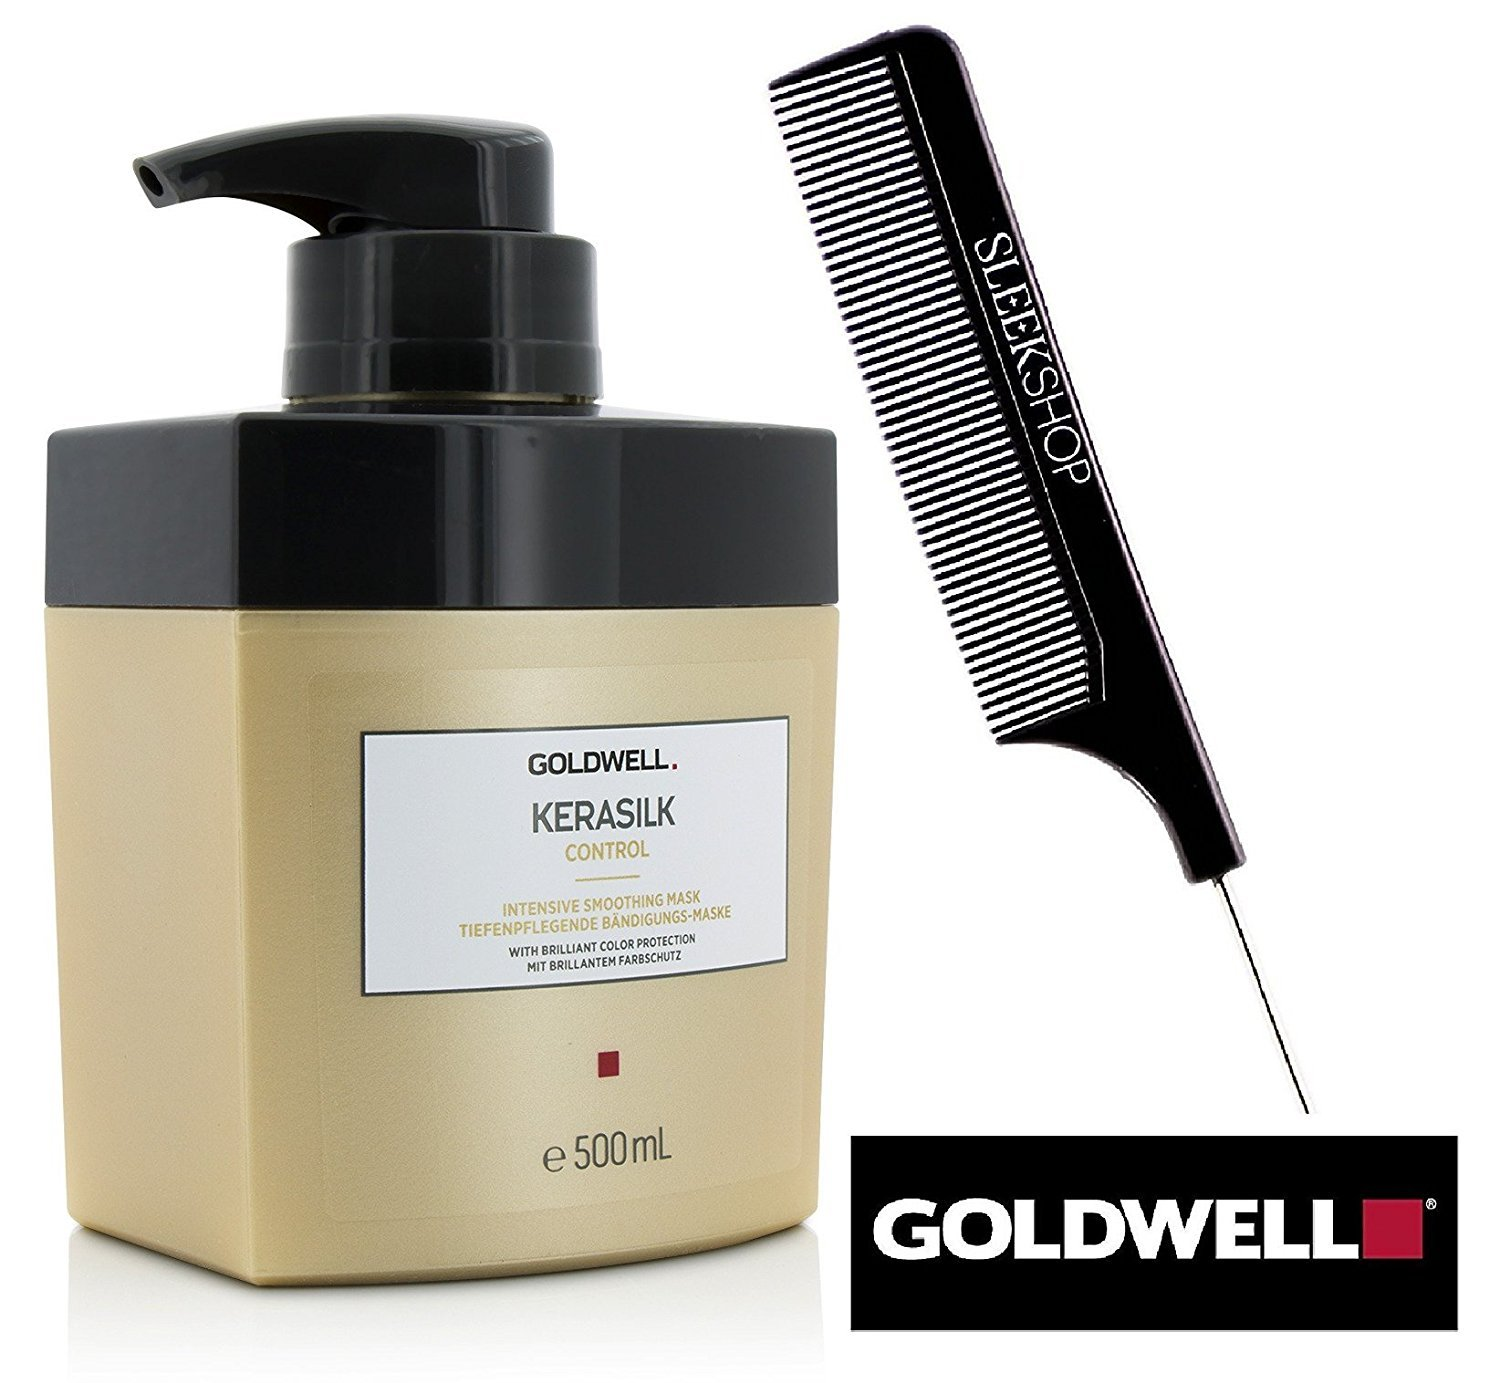 Goldwell Kerasilk CONTROL Intensive Smoothing Mask with brilliant color protection (with Sleek Steel Pin Tail Comb) (16.9 oz / 500 ml PRO SIZE)